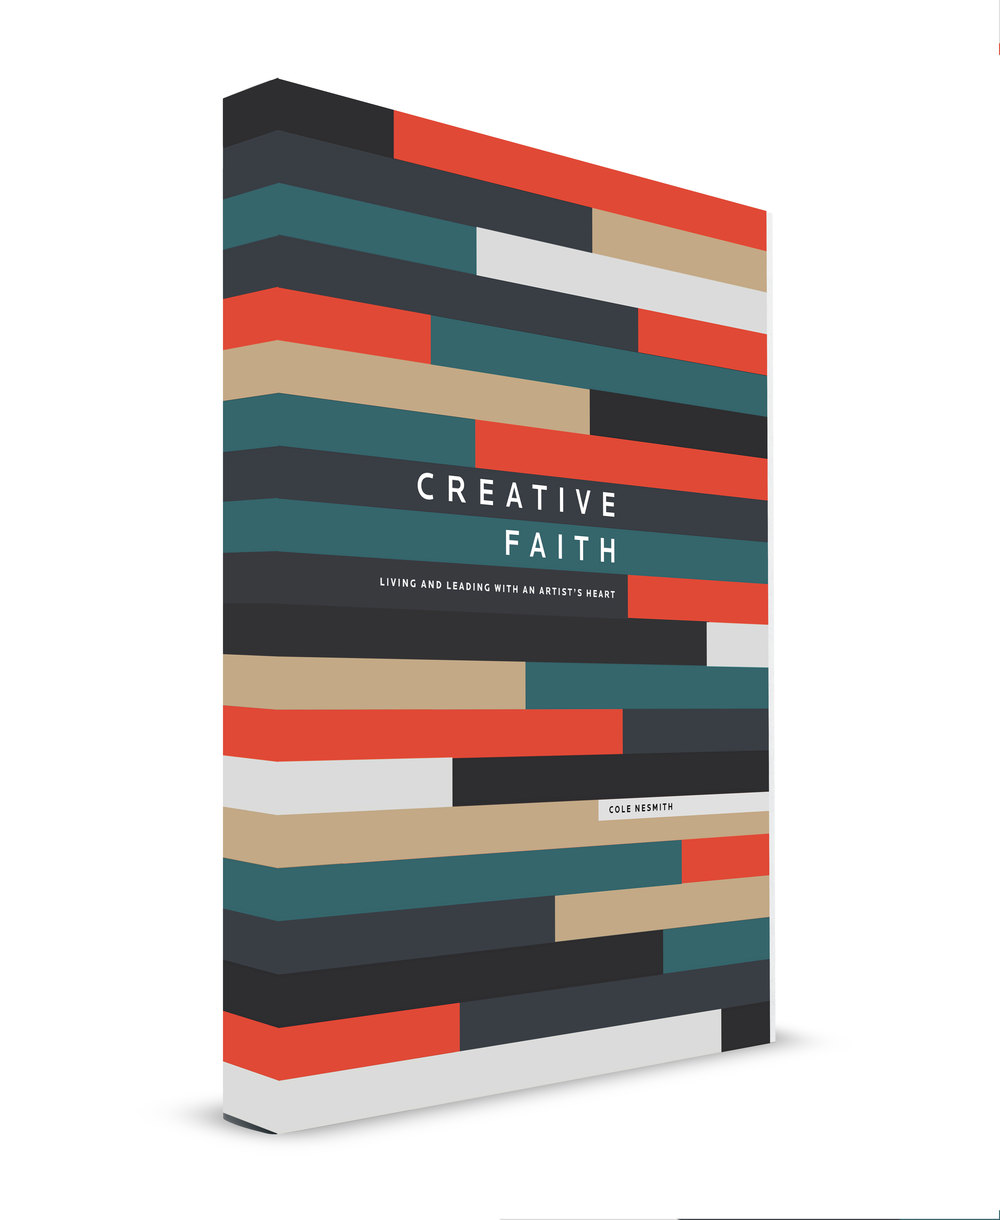 Creative Faith explores the intersection of art and faith. A free download at NoiseTrade.